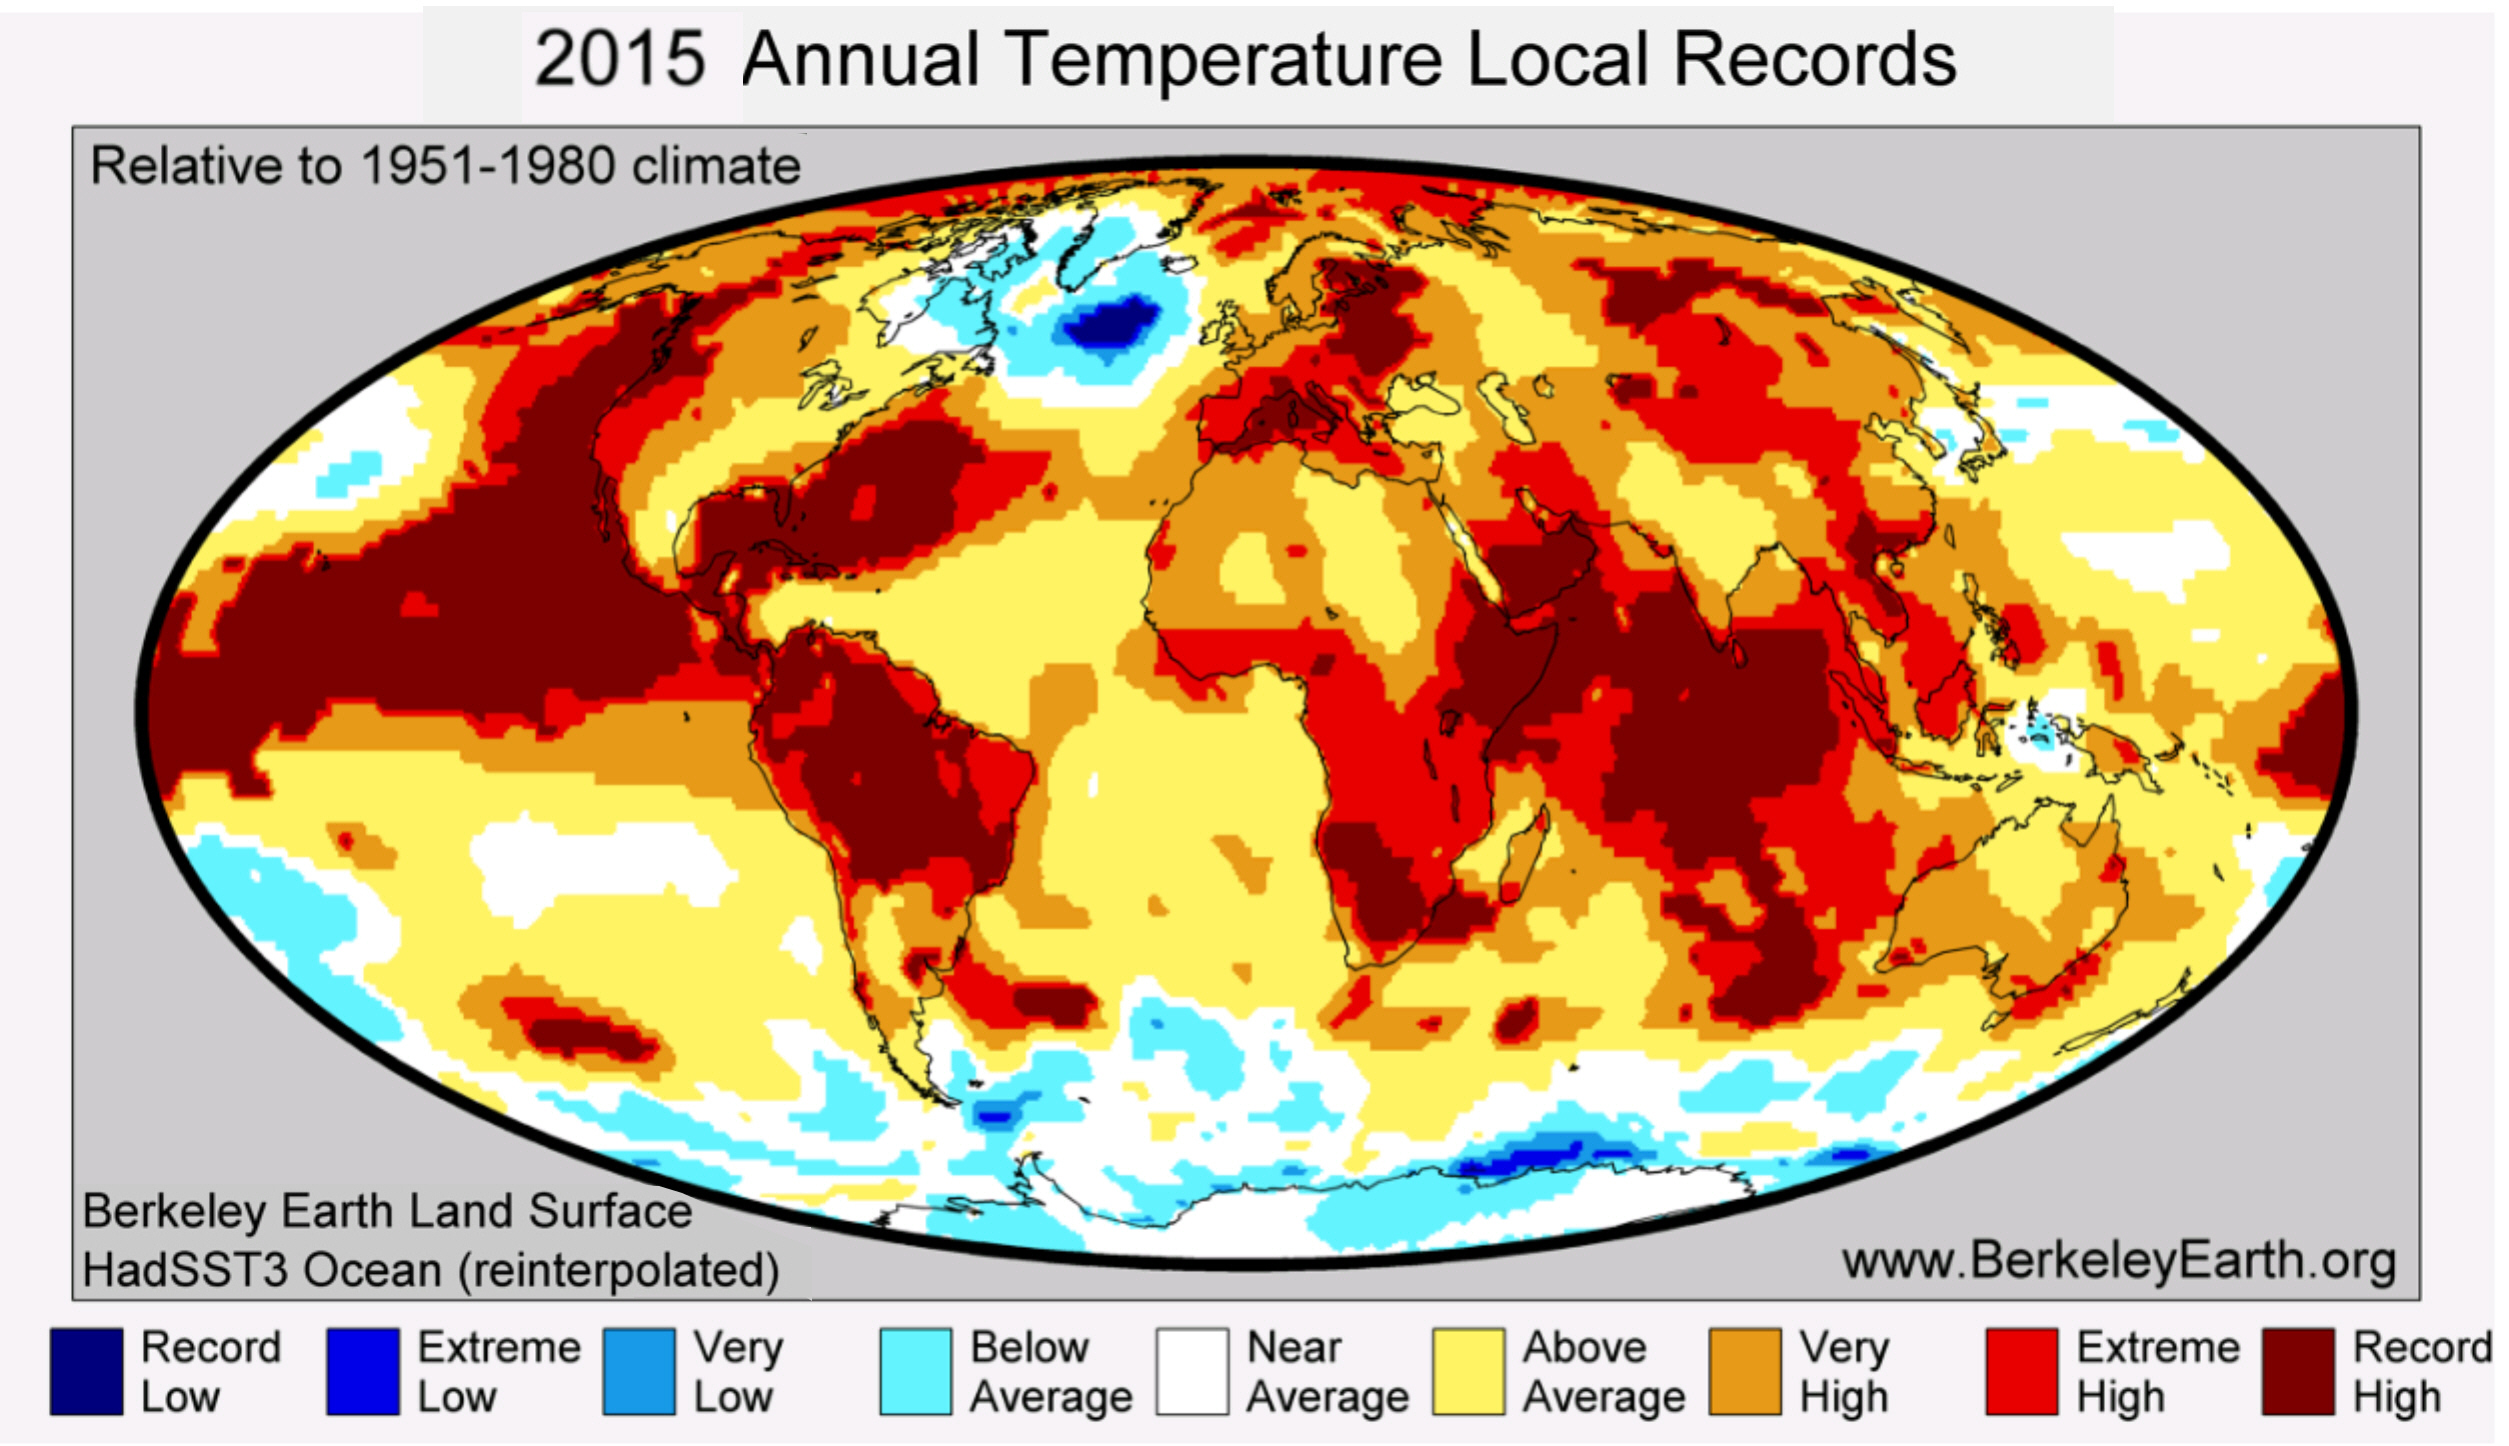 global warming simple english the encyclopedia places that were warmer red and cooler blue in 2015 than in previous average